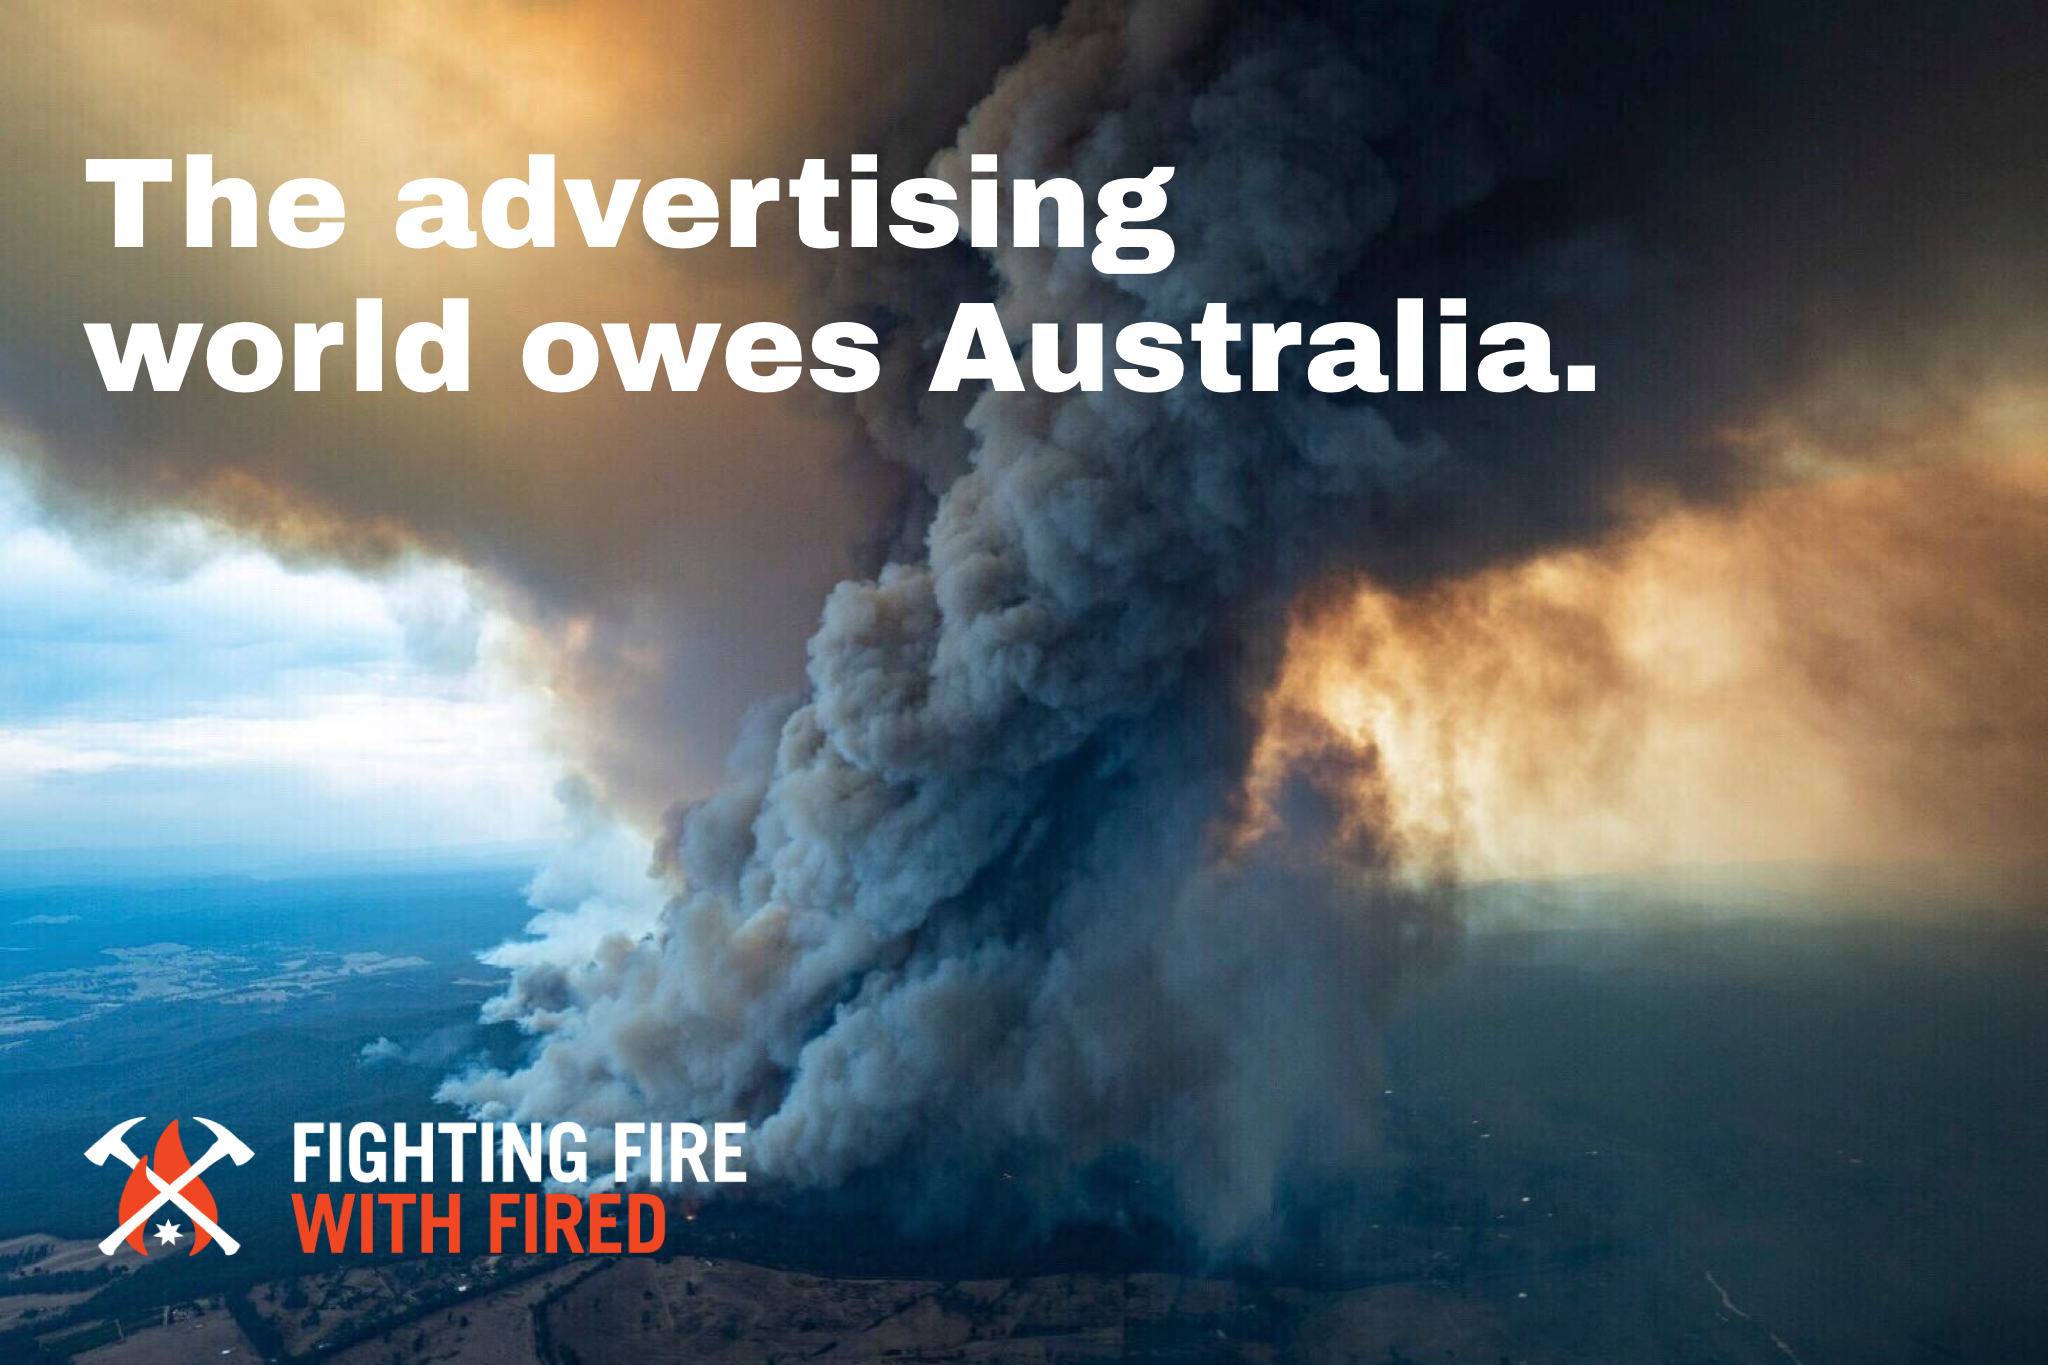 Global agency Anomaly supports fire relief efforts by 'firing' their Aussies for a week